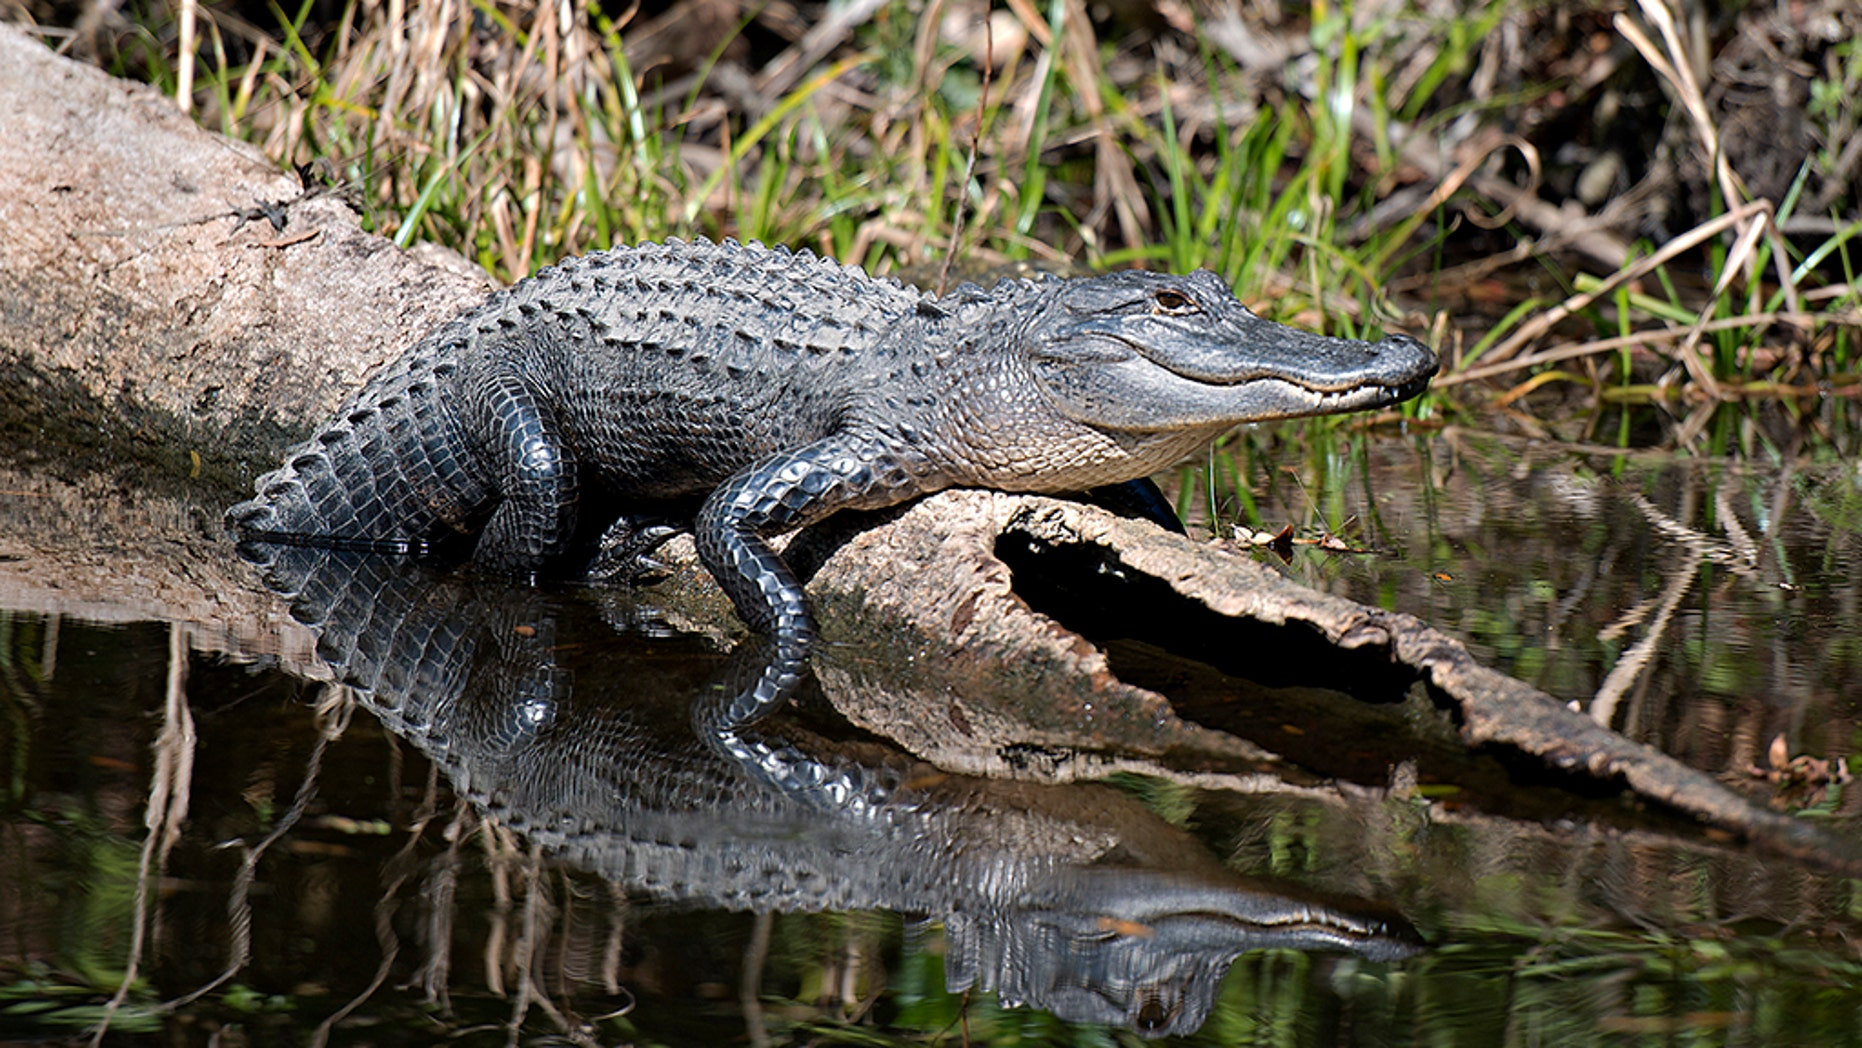 New Jersey police say they are looking for an alligator that was spotted out and about this week.